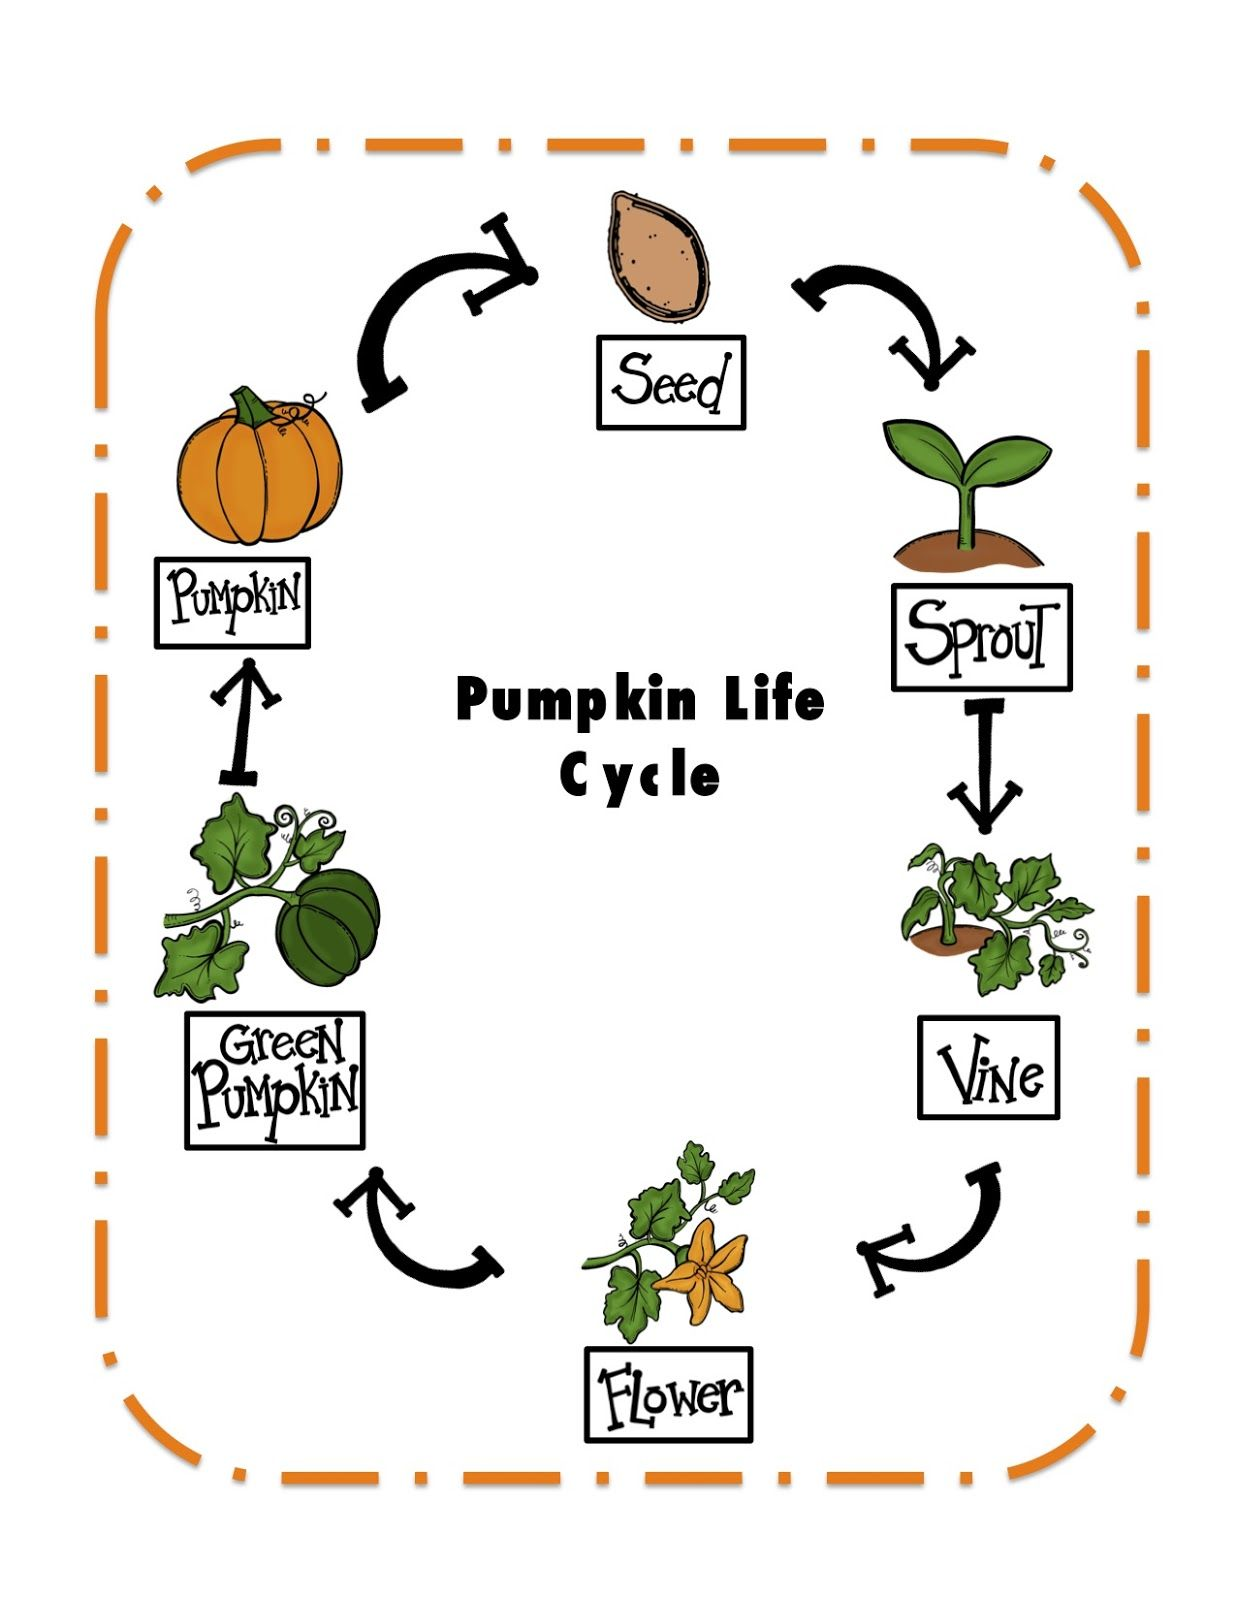 photograph regarding Life Cycle of a Pumpkin Printable named Pumpkin Daily life Cycle Printable ~ Preschool Printables